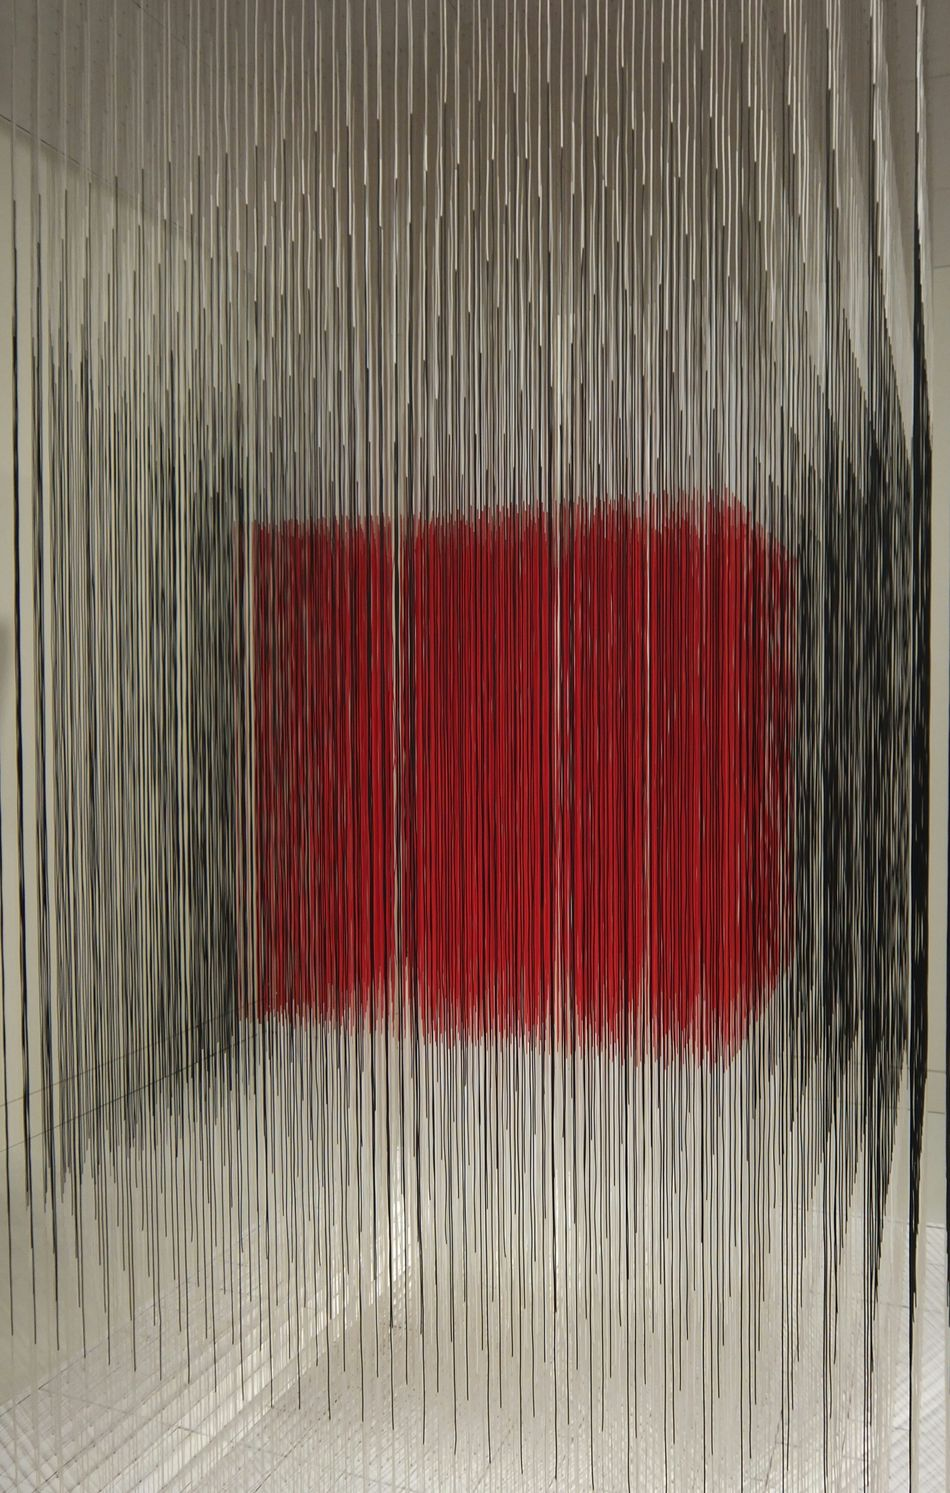 Exposition temporaire Musee Soulages Rodez Jesus Soto ArtWork Museum Art Museum Contemporary Art Rodez Aveyron Geometry Cinetismo Cinetisme